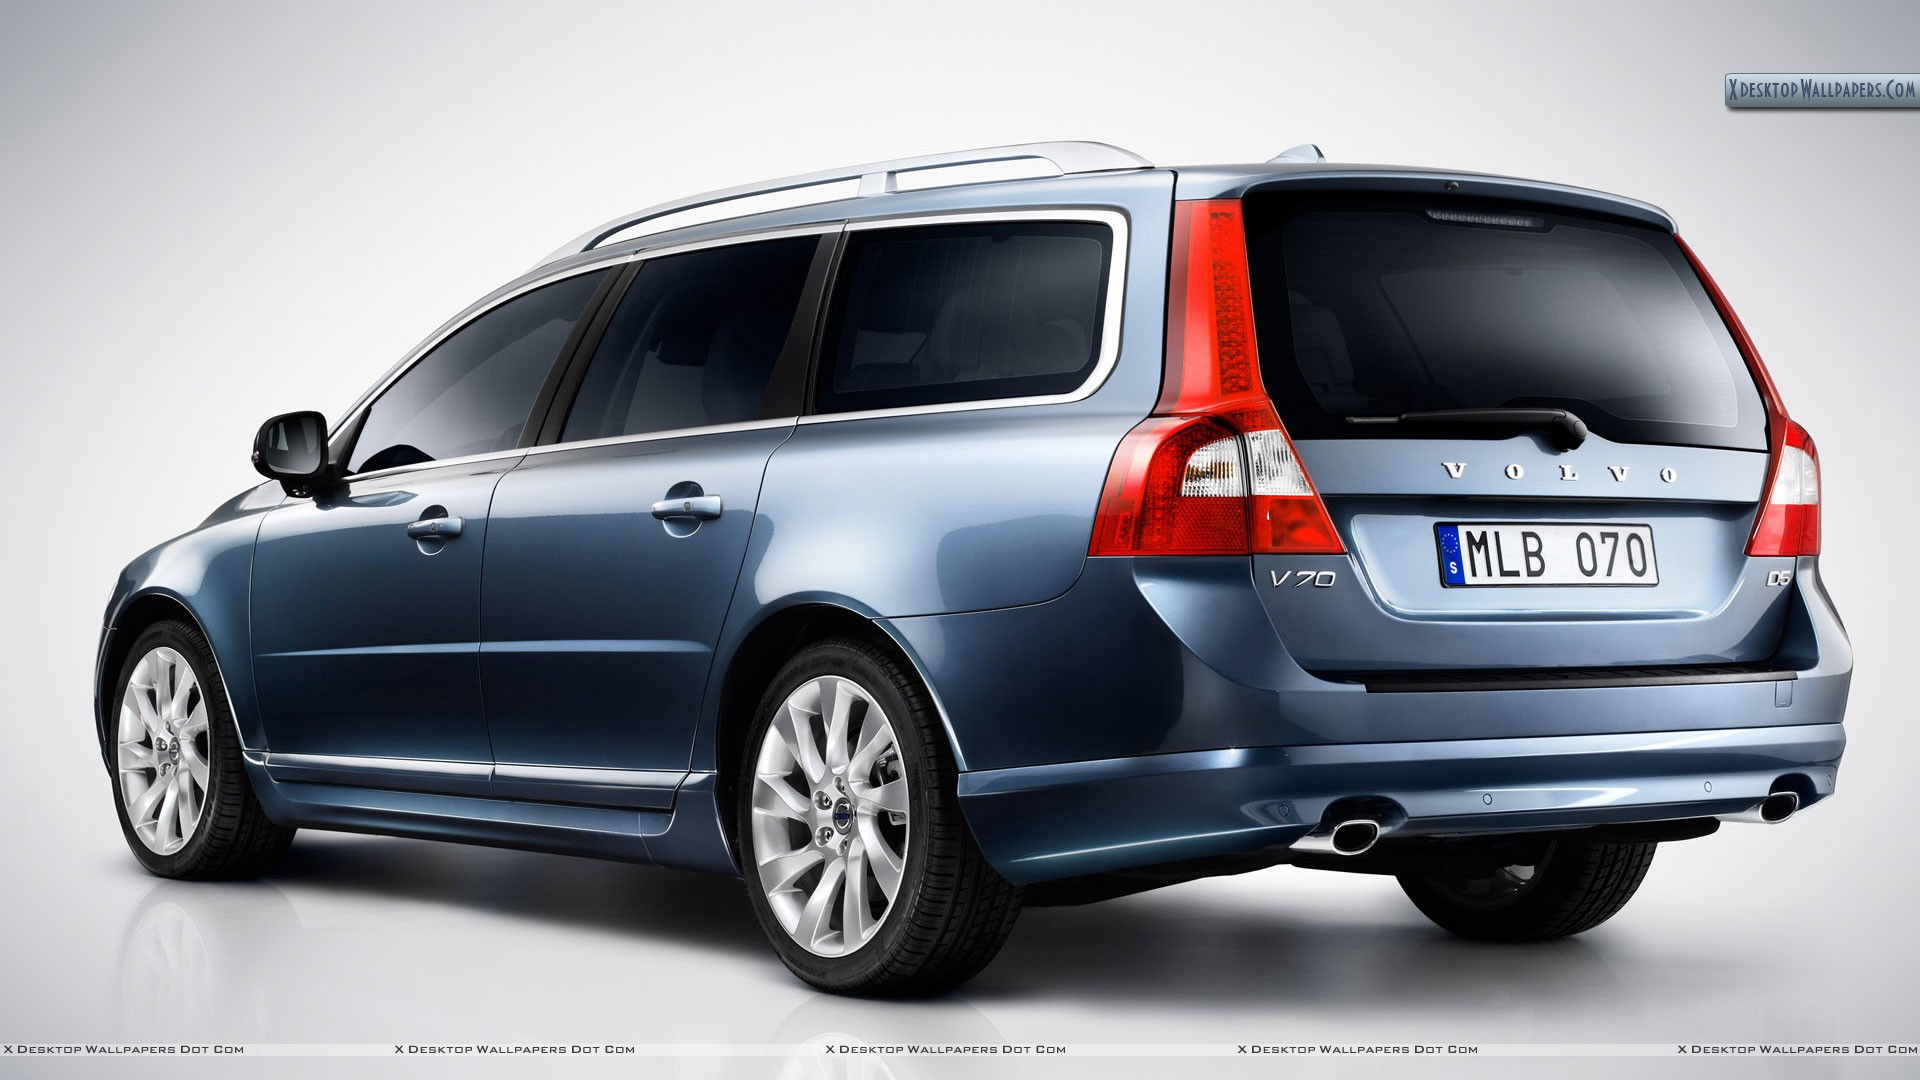 Volvo V70 Wallpapers Photos Images in HD 1920x1080